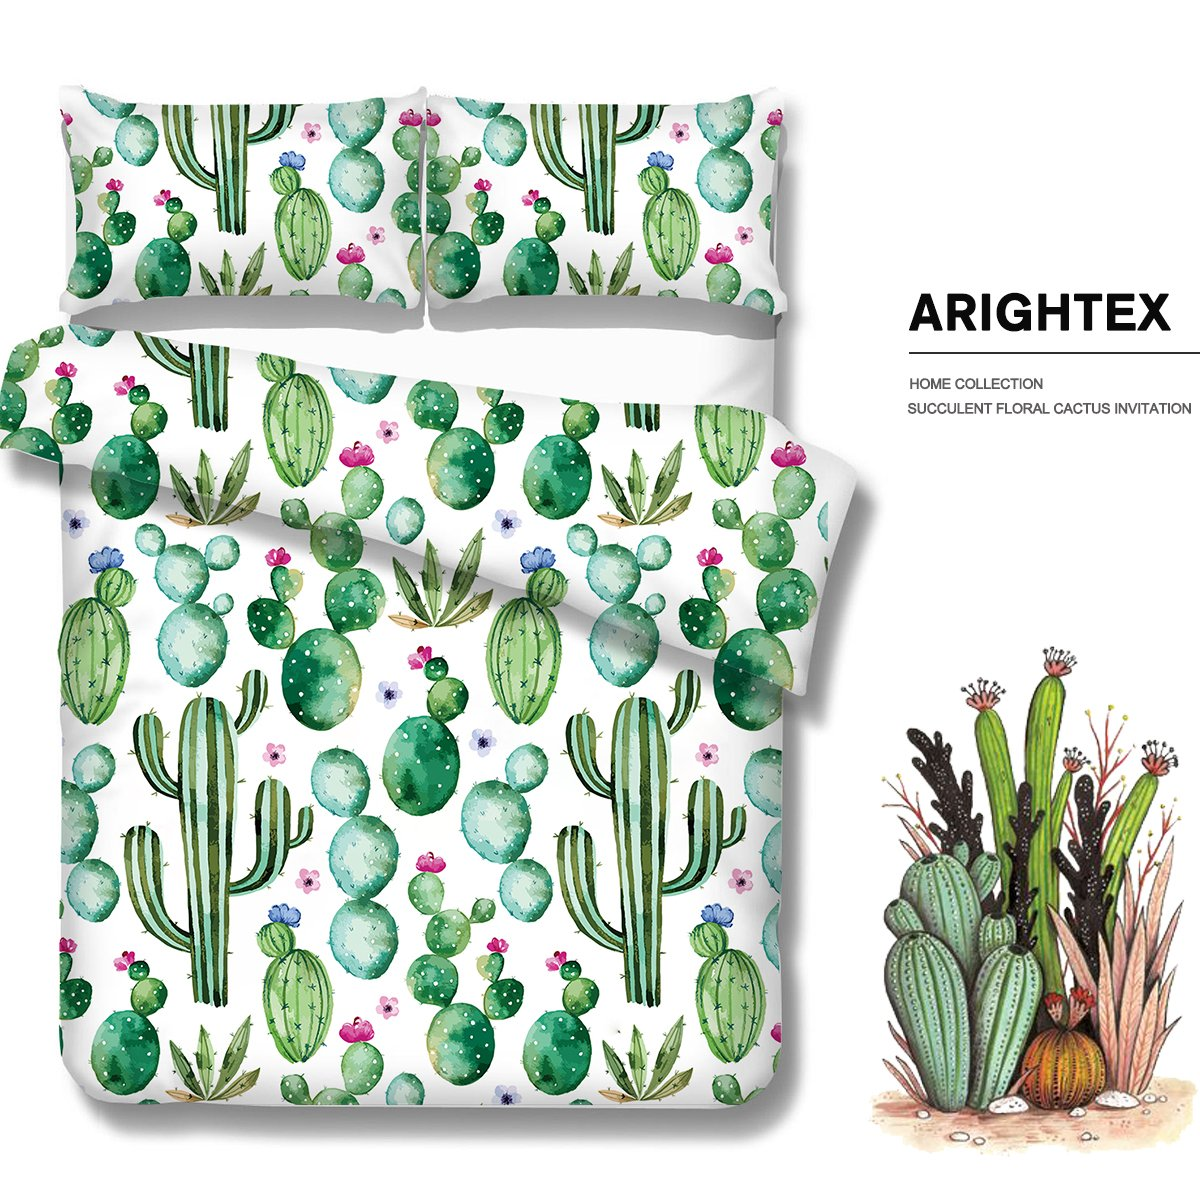 Queen Arightex Cactus Bedding Cactus Duvet Cover Summer Plant Bed Set Nature Duvet Cover Set Bright Dorm Bedding Kingtex